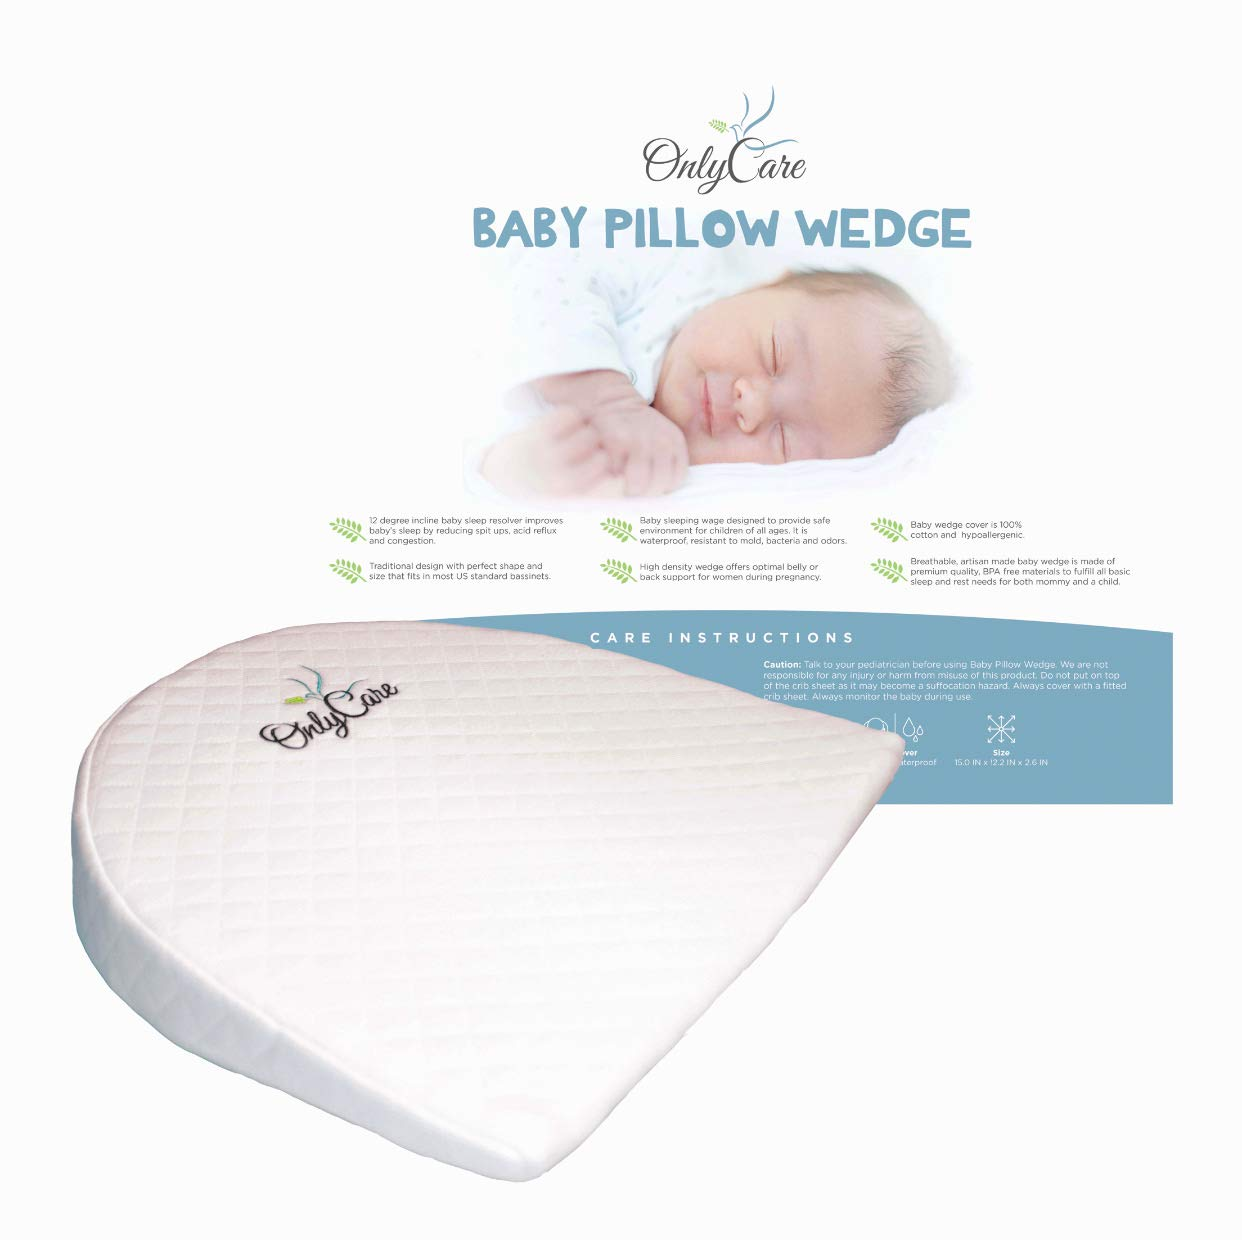 OnlyCare Baby Wedge Pillow | Best for Infants High Density Foam with Waterproof Layer & Cotton Cover | Crib Sleep Positioner for Reflux and Colic | Pregnancy Support Pillow 2019 by OnlyCare